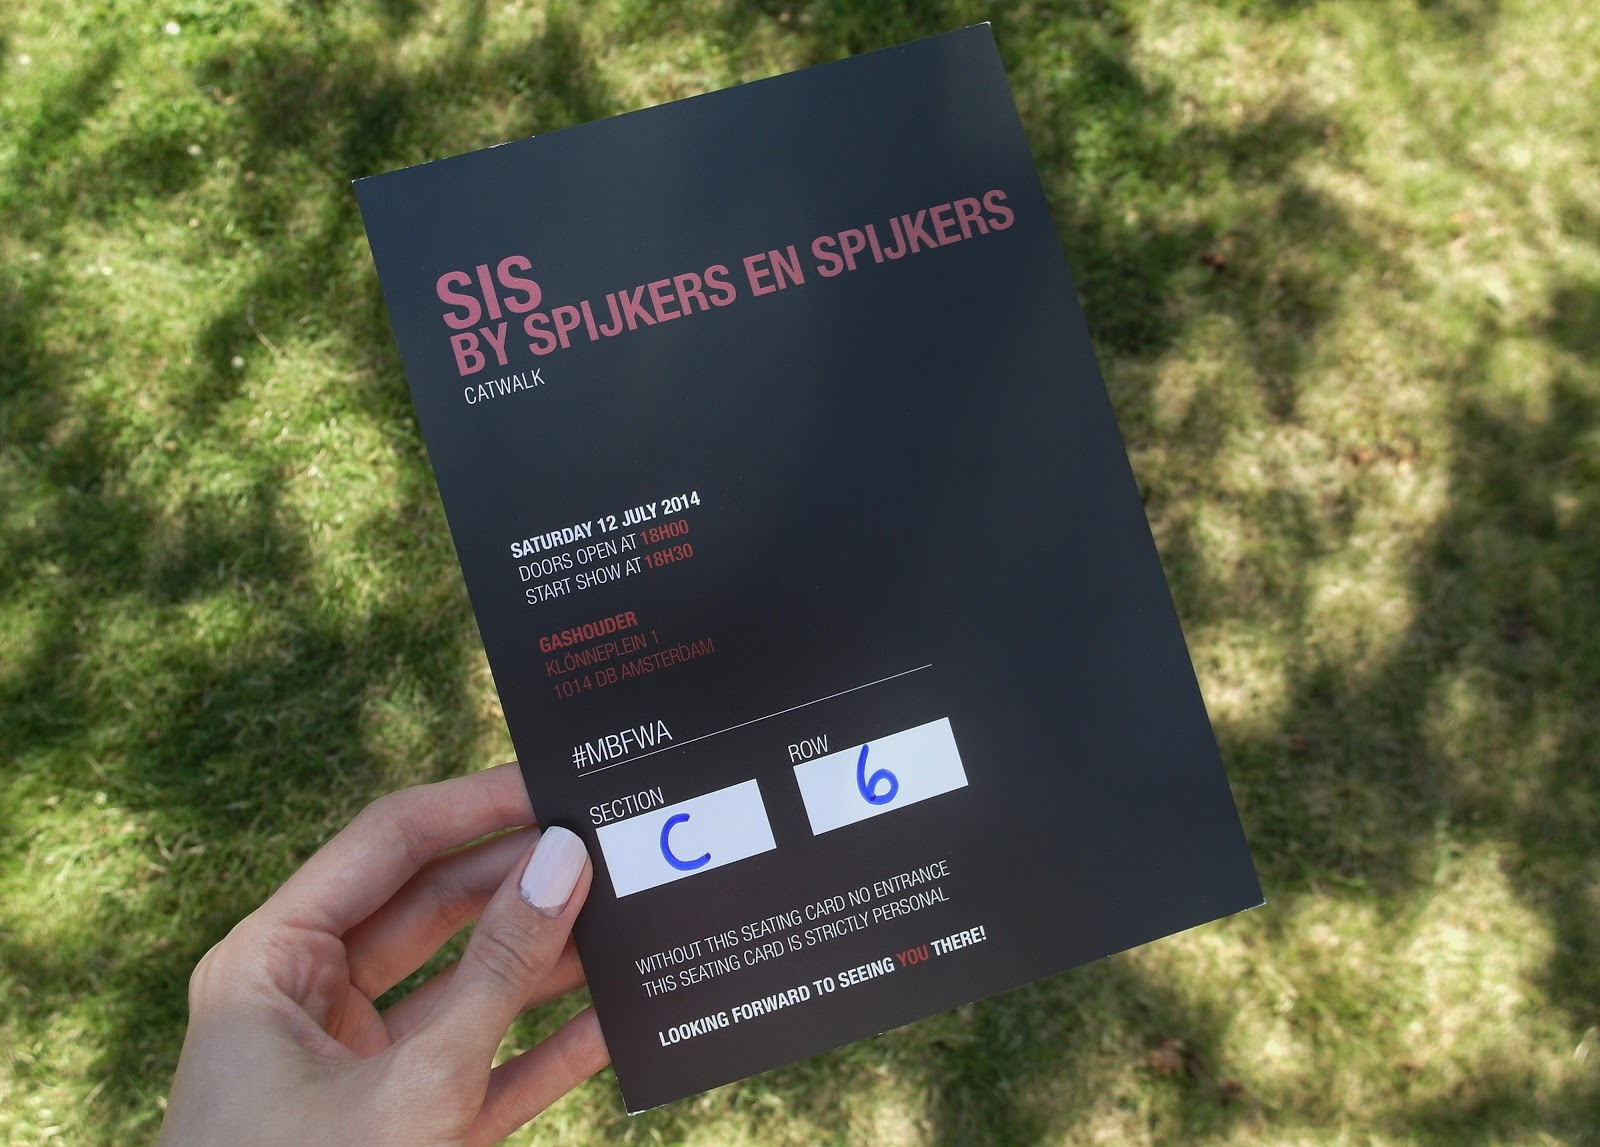 SIS by Spijkers en Spijkers MBFWA Fashion Week 2015